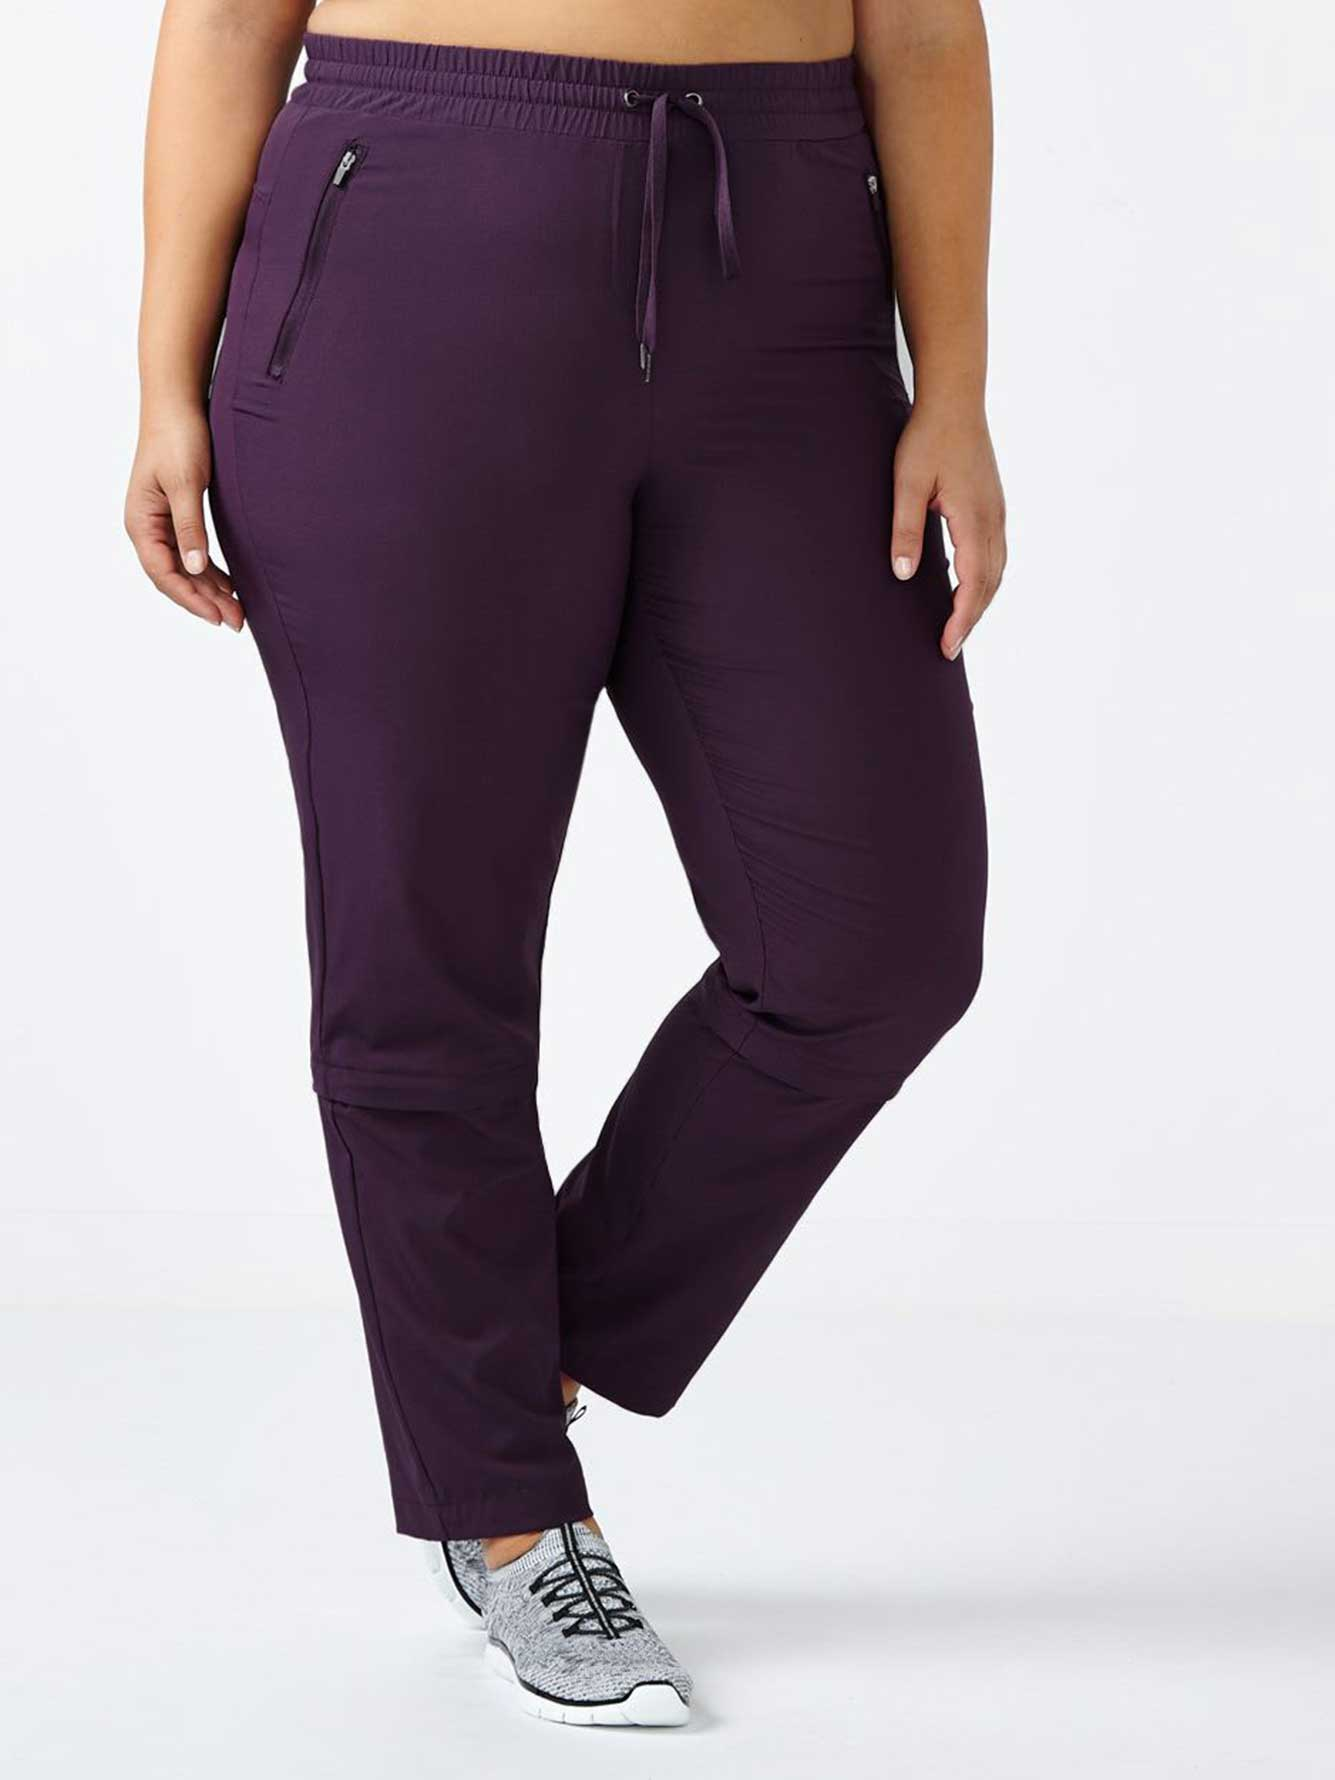 afb98d4b931 ... Plus-Size Zip Off Pant. tap to zoom